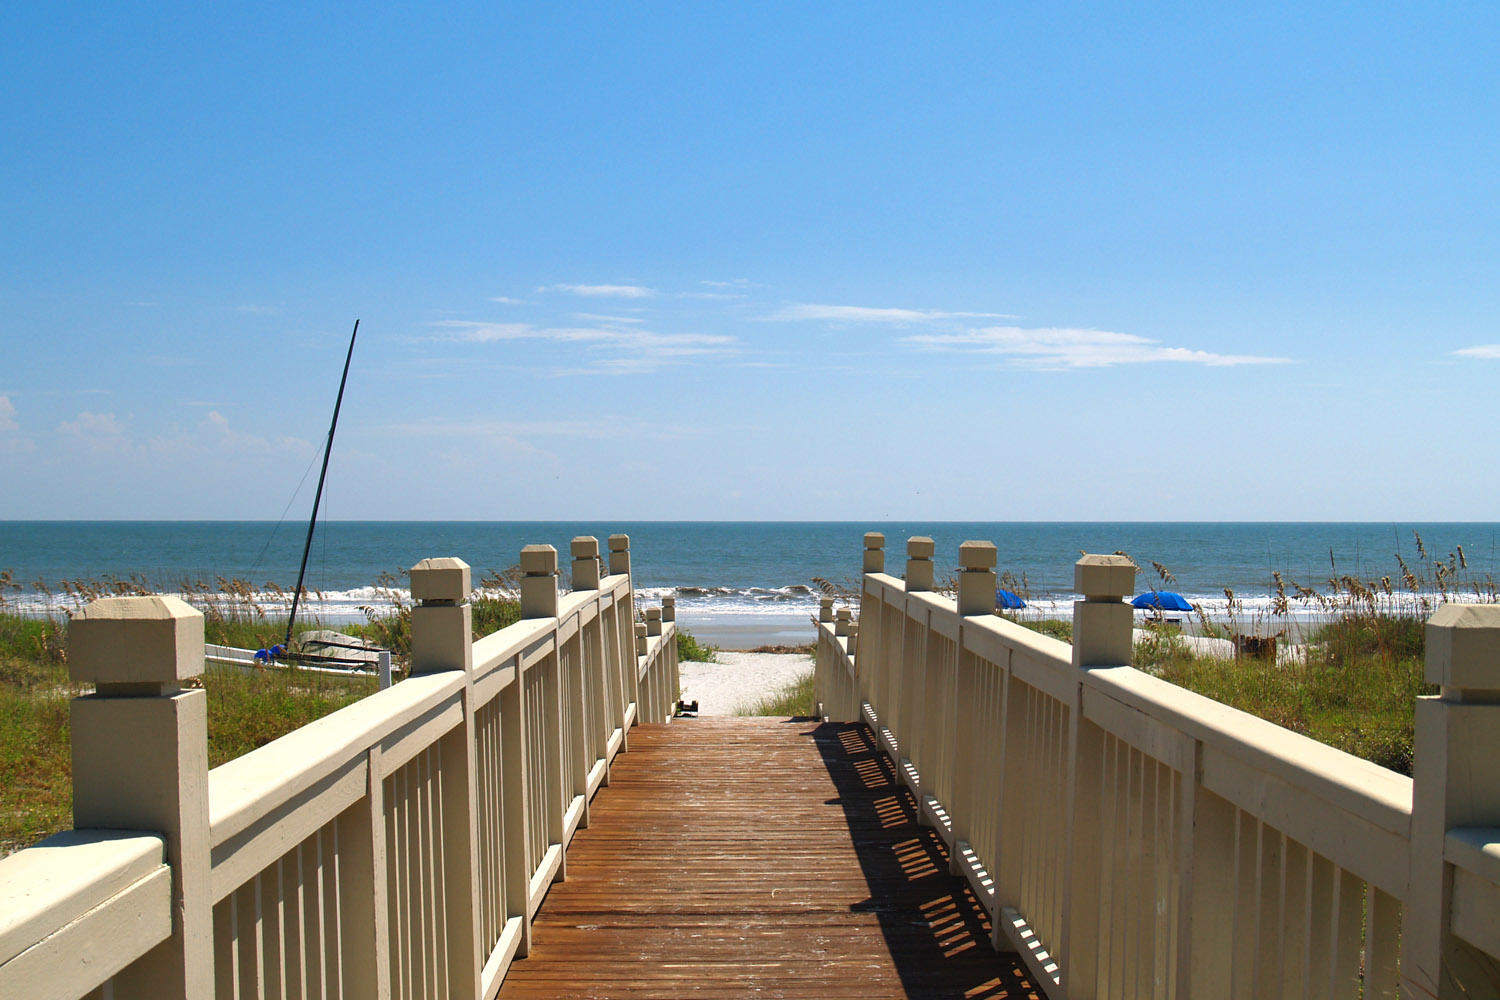 Walkway to the Beach